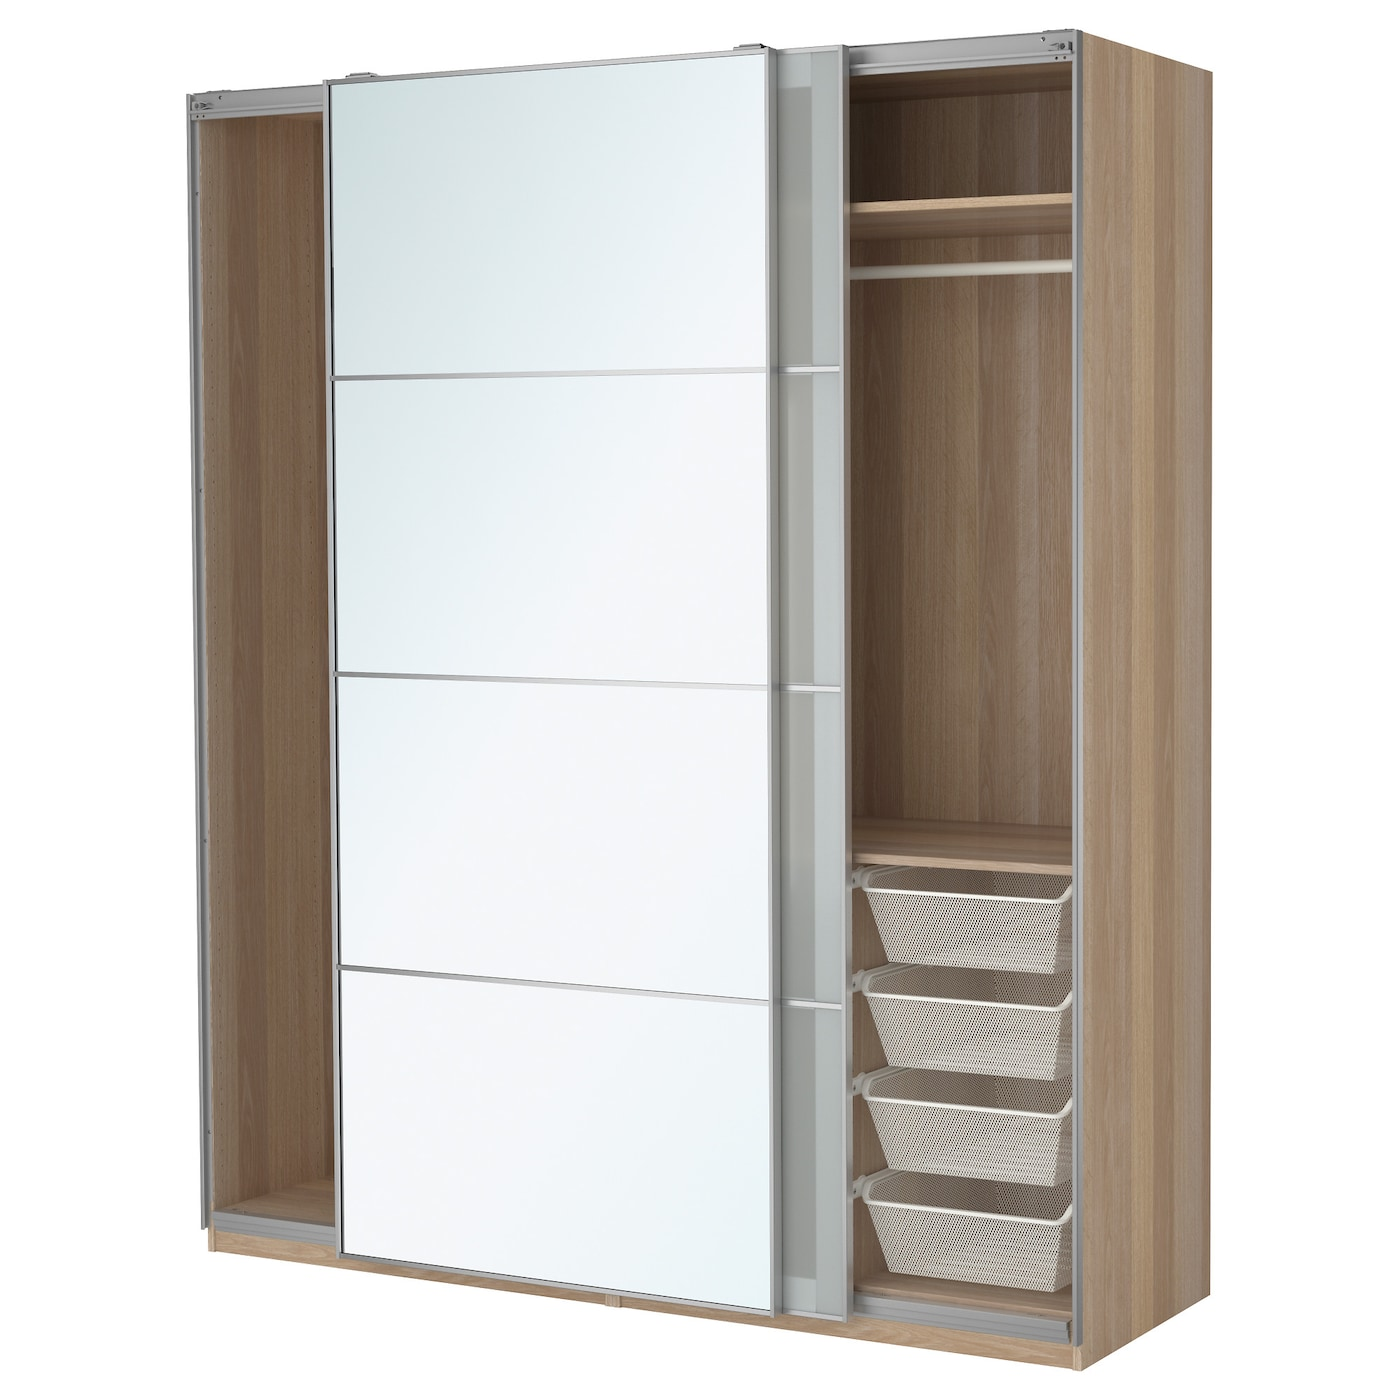 Pax wardrobe white stained oak effect auli sekken for Armoire porte coulissante miroir ikea